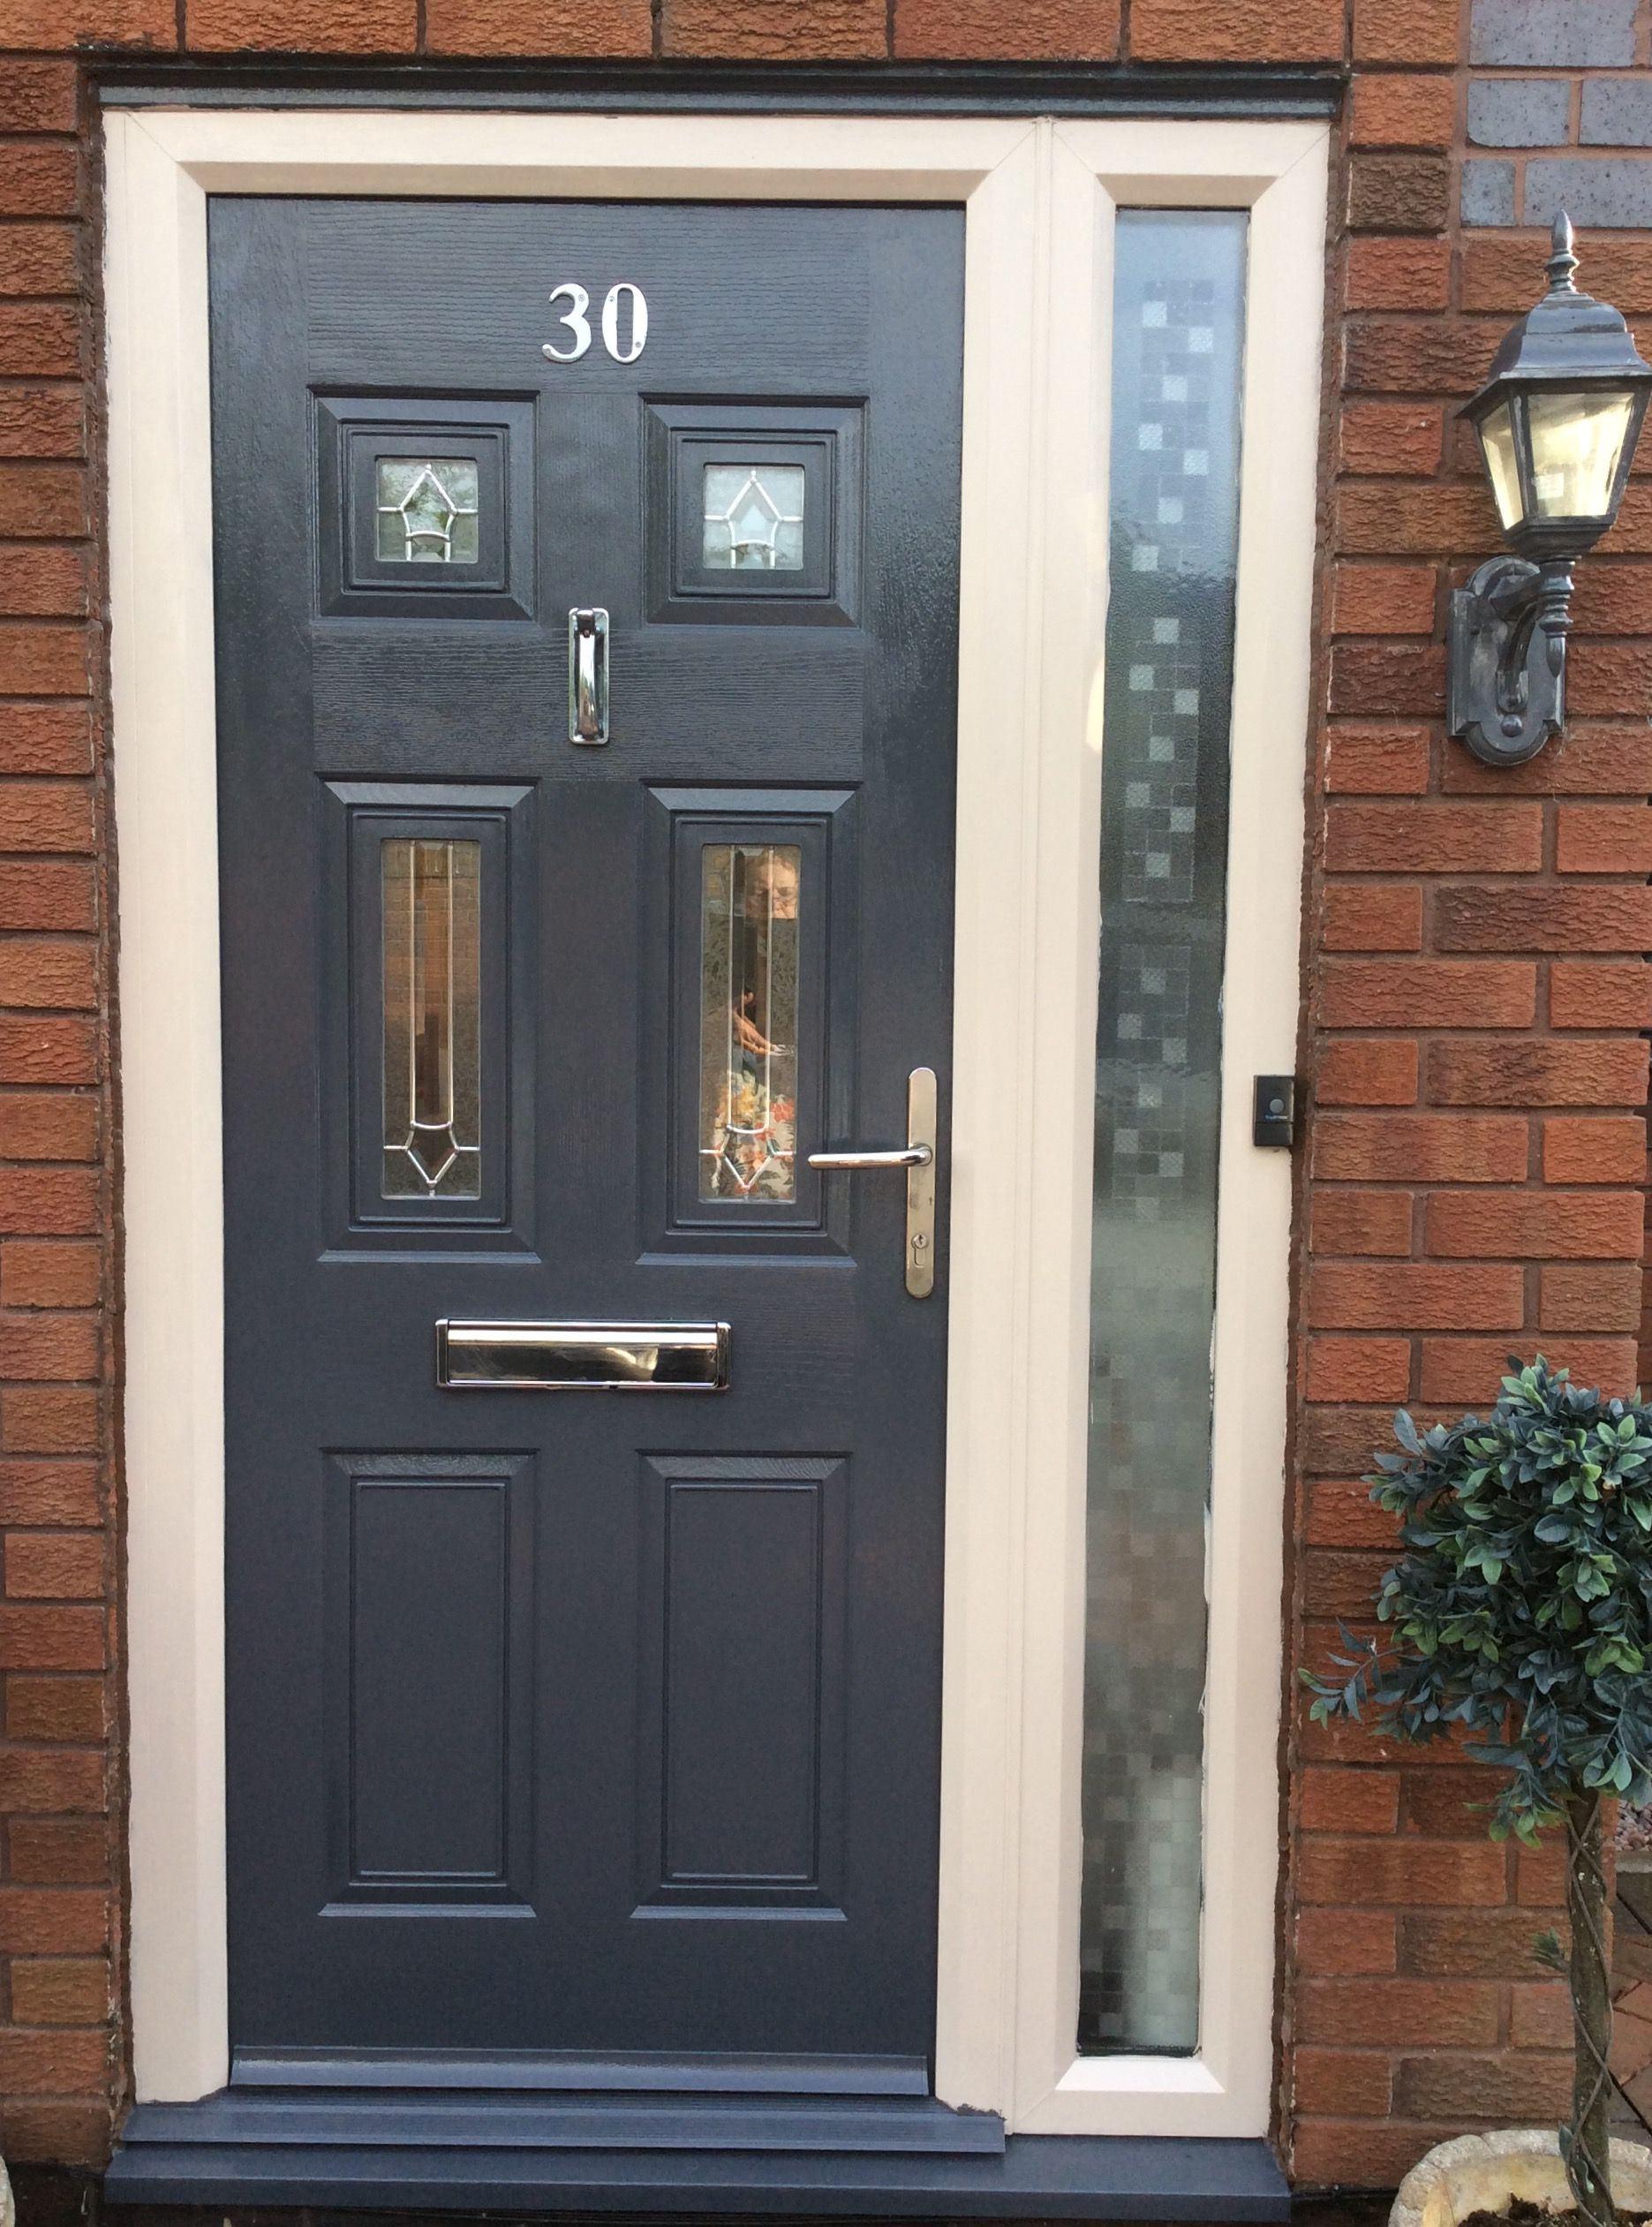 Upvc door painted Dark Gray : upvc door - pezcame.com